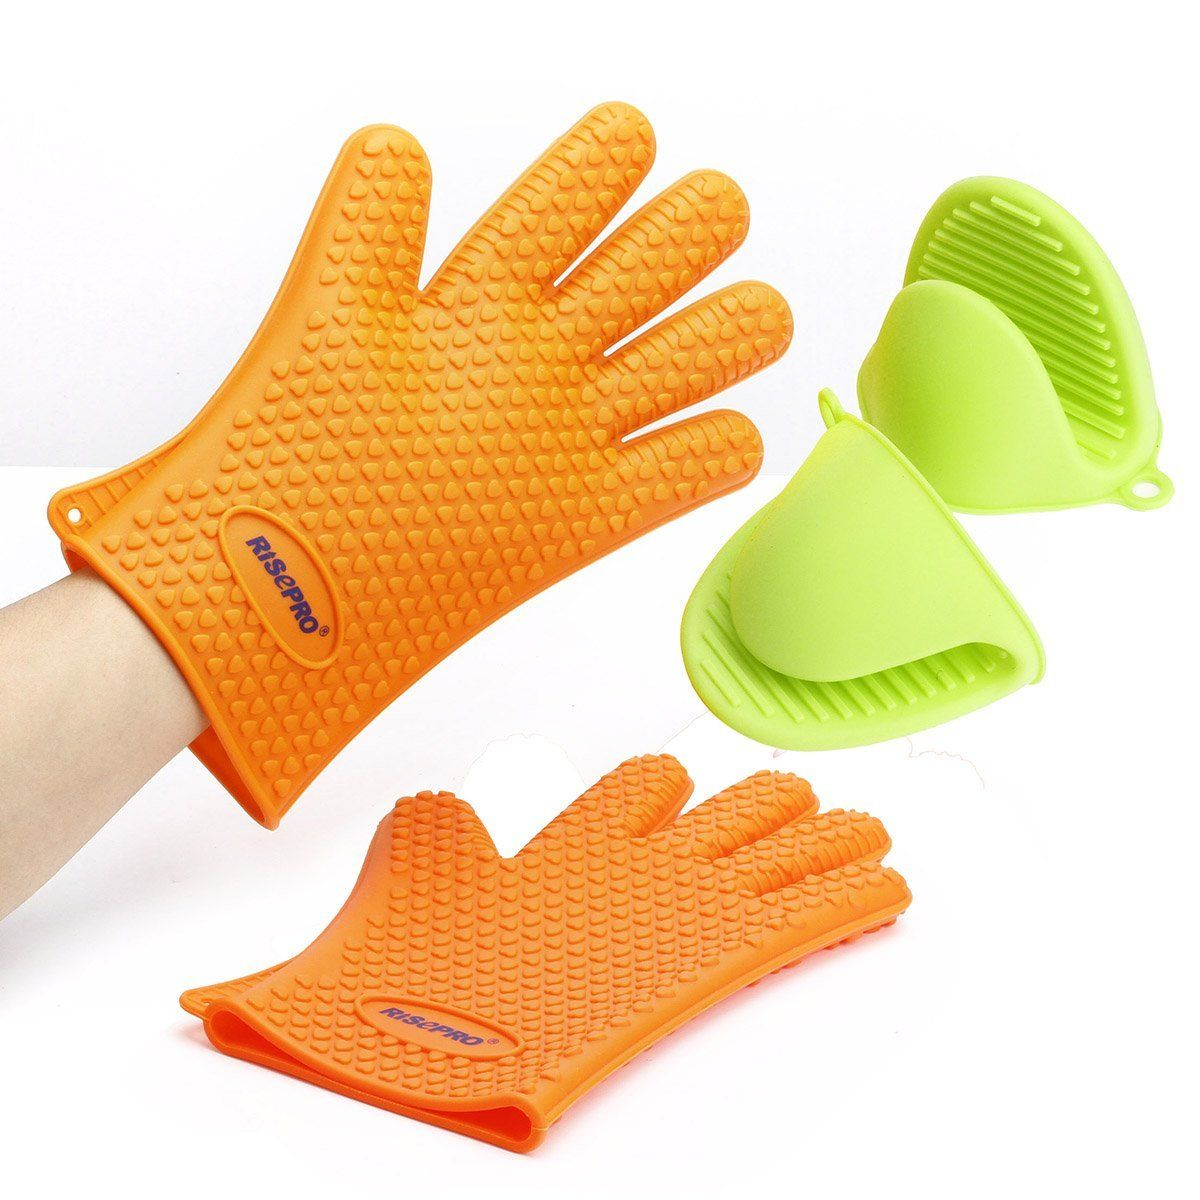 Grace Kitchenware No.1 Silicone BBQ //Cooking Gloves Plus Meat Shredder and Brush